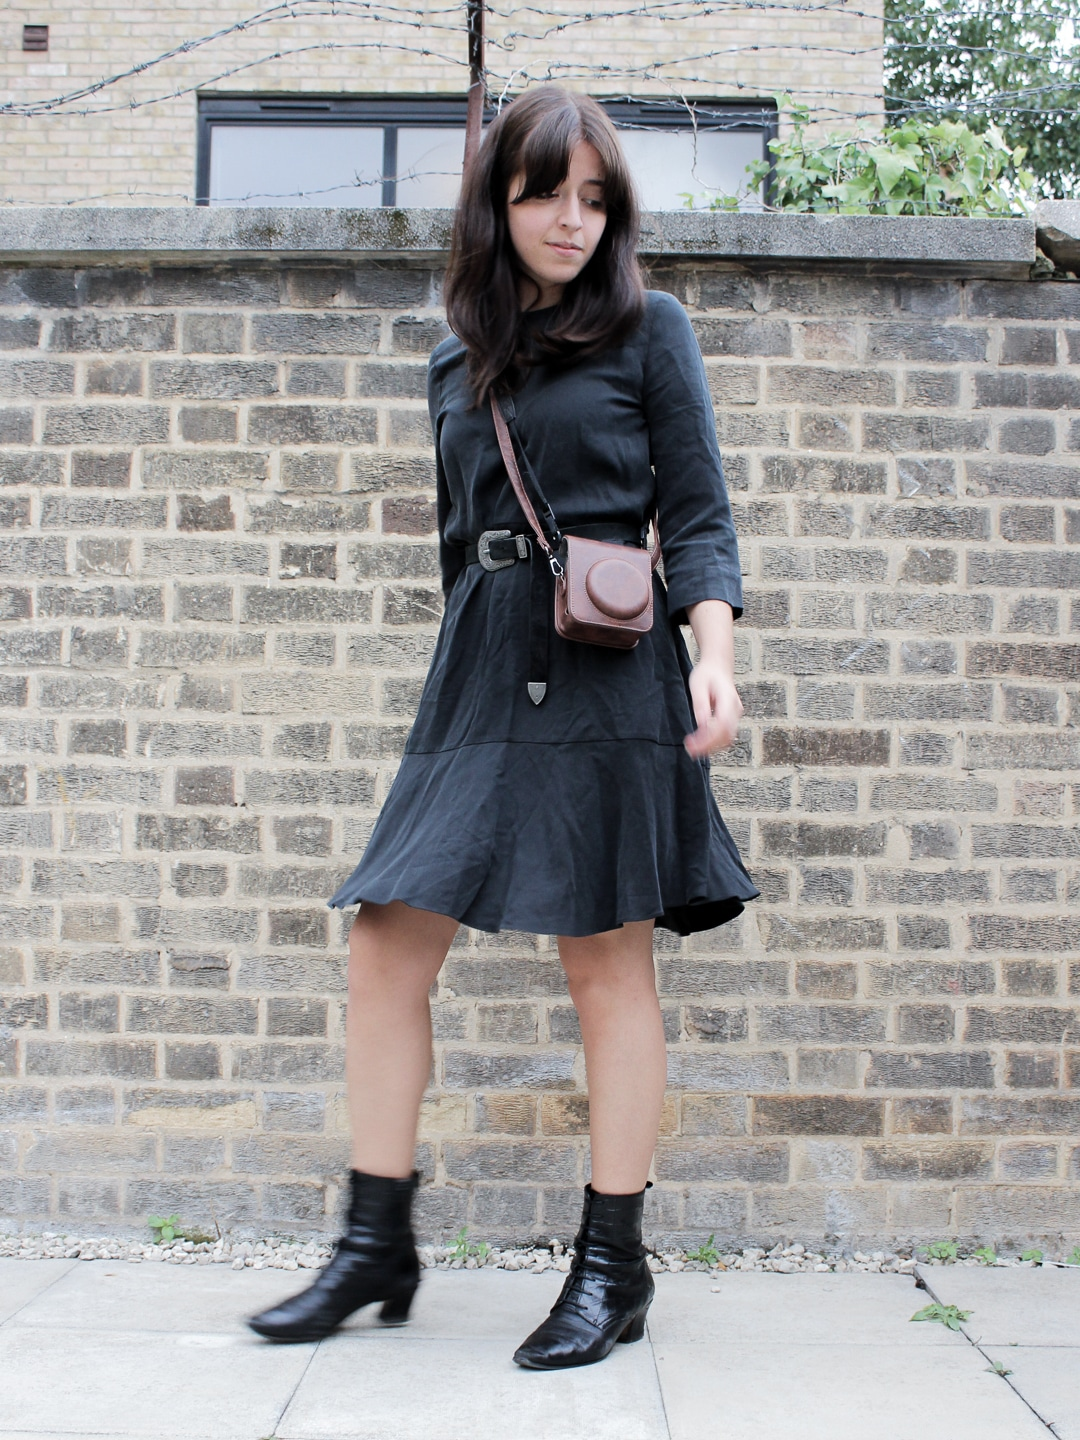 Besma in a black dress with belt, boots, and brown camera bag